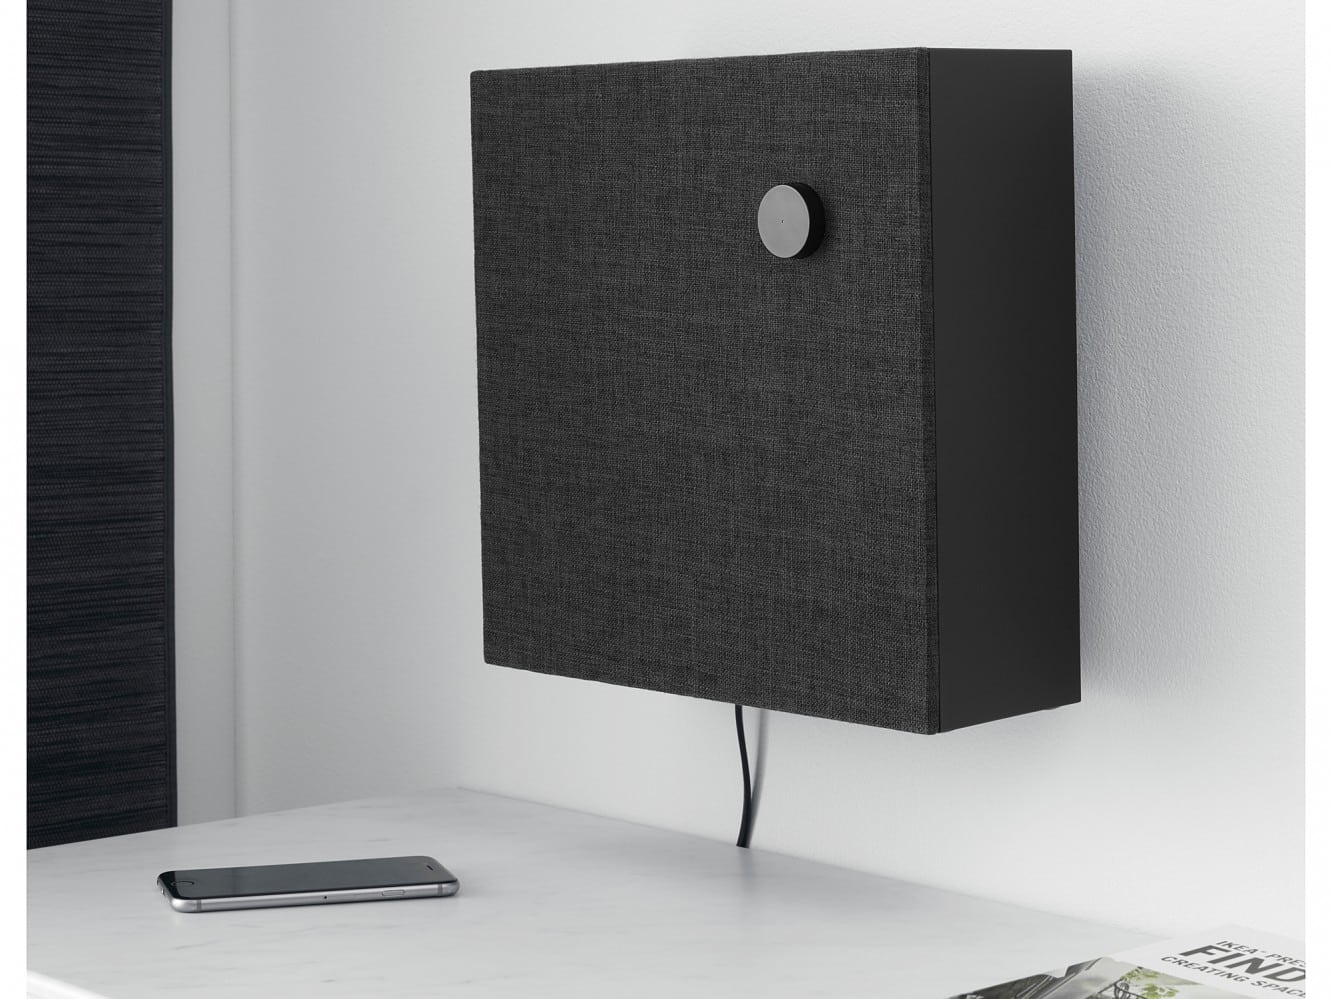 Ikea releases its first Bluetooth speaker